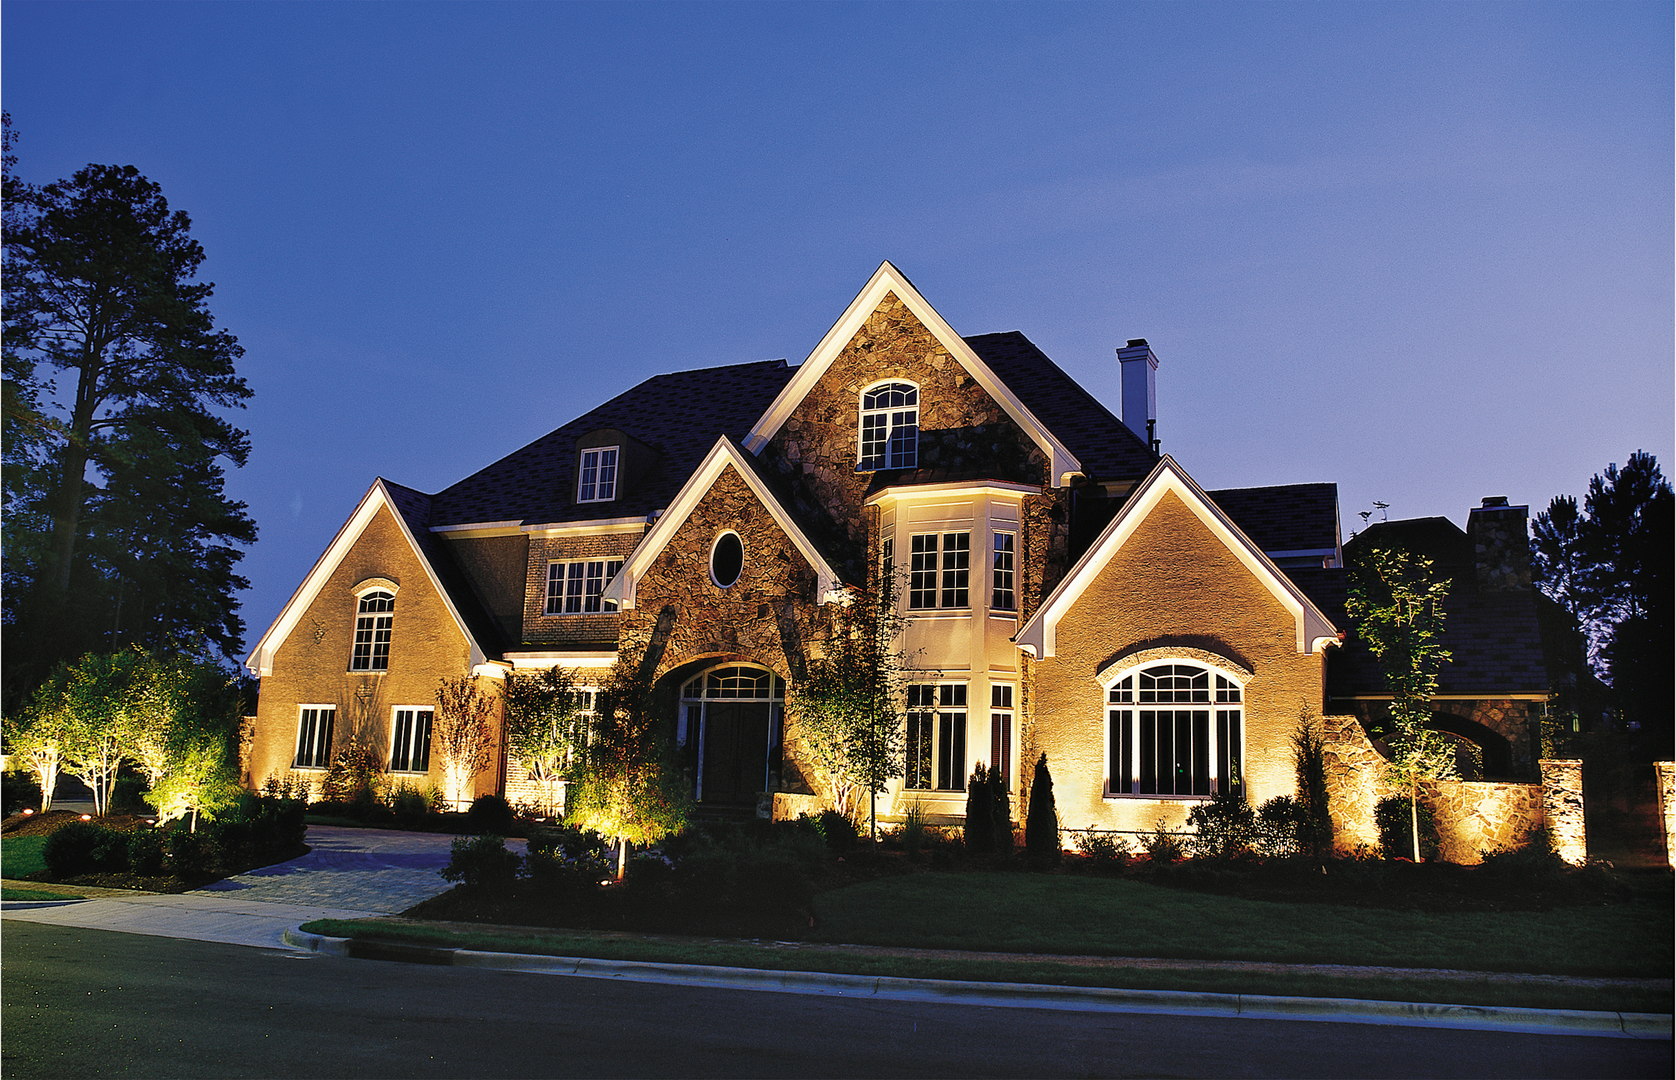 Professional outdoor lighting installation repair houston we provide professional outdoor lighting services and installation mozeypictures Image collections